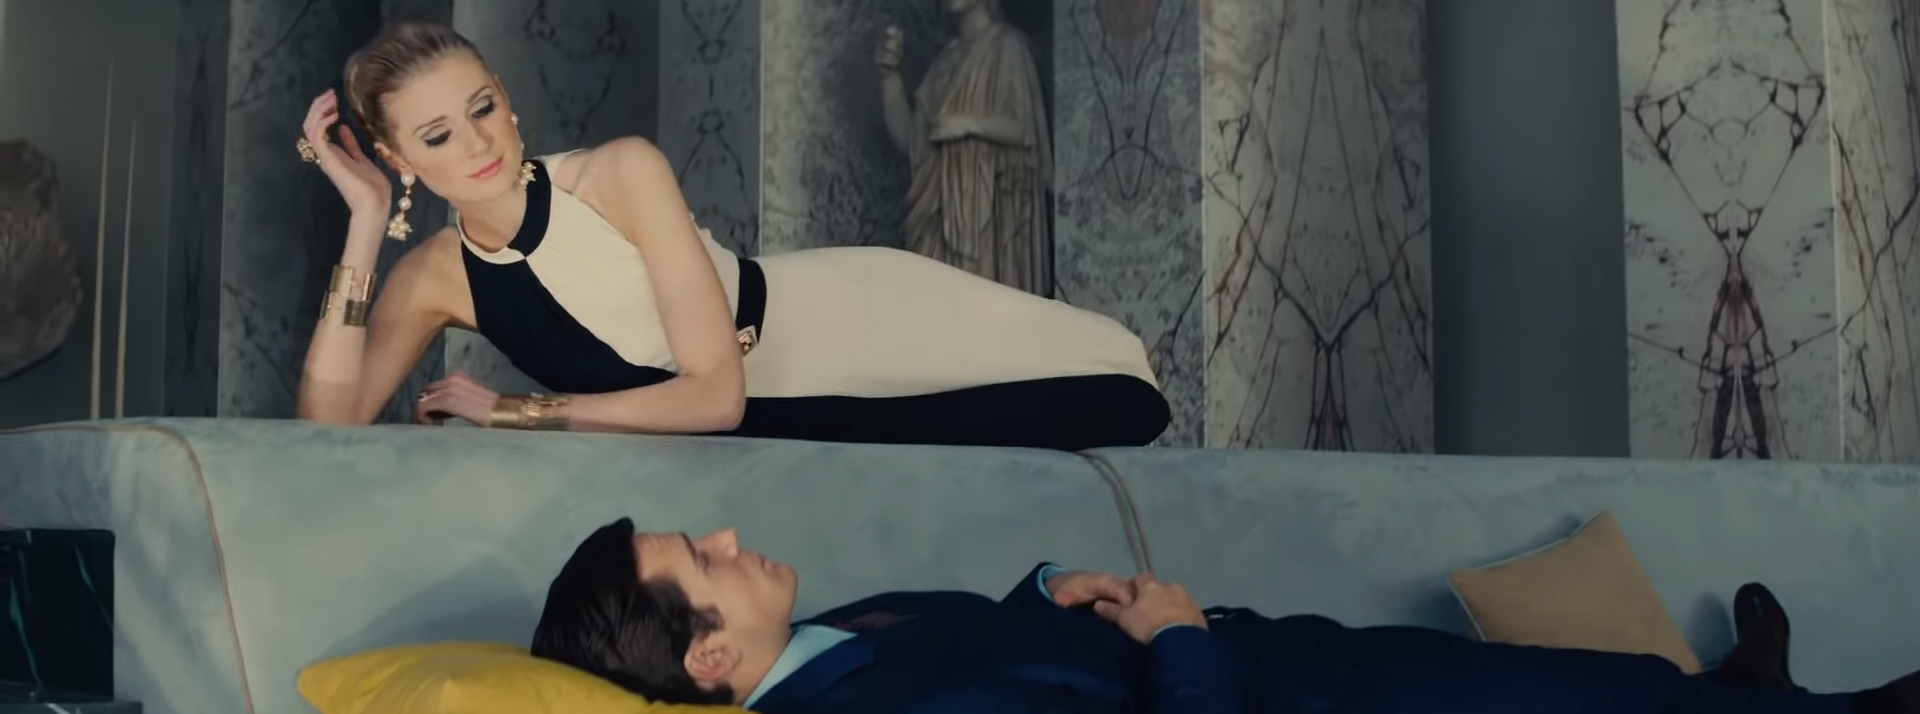 The Man from U.N.C.L.E. Image Credit: Warner Bros.